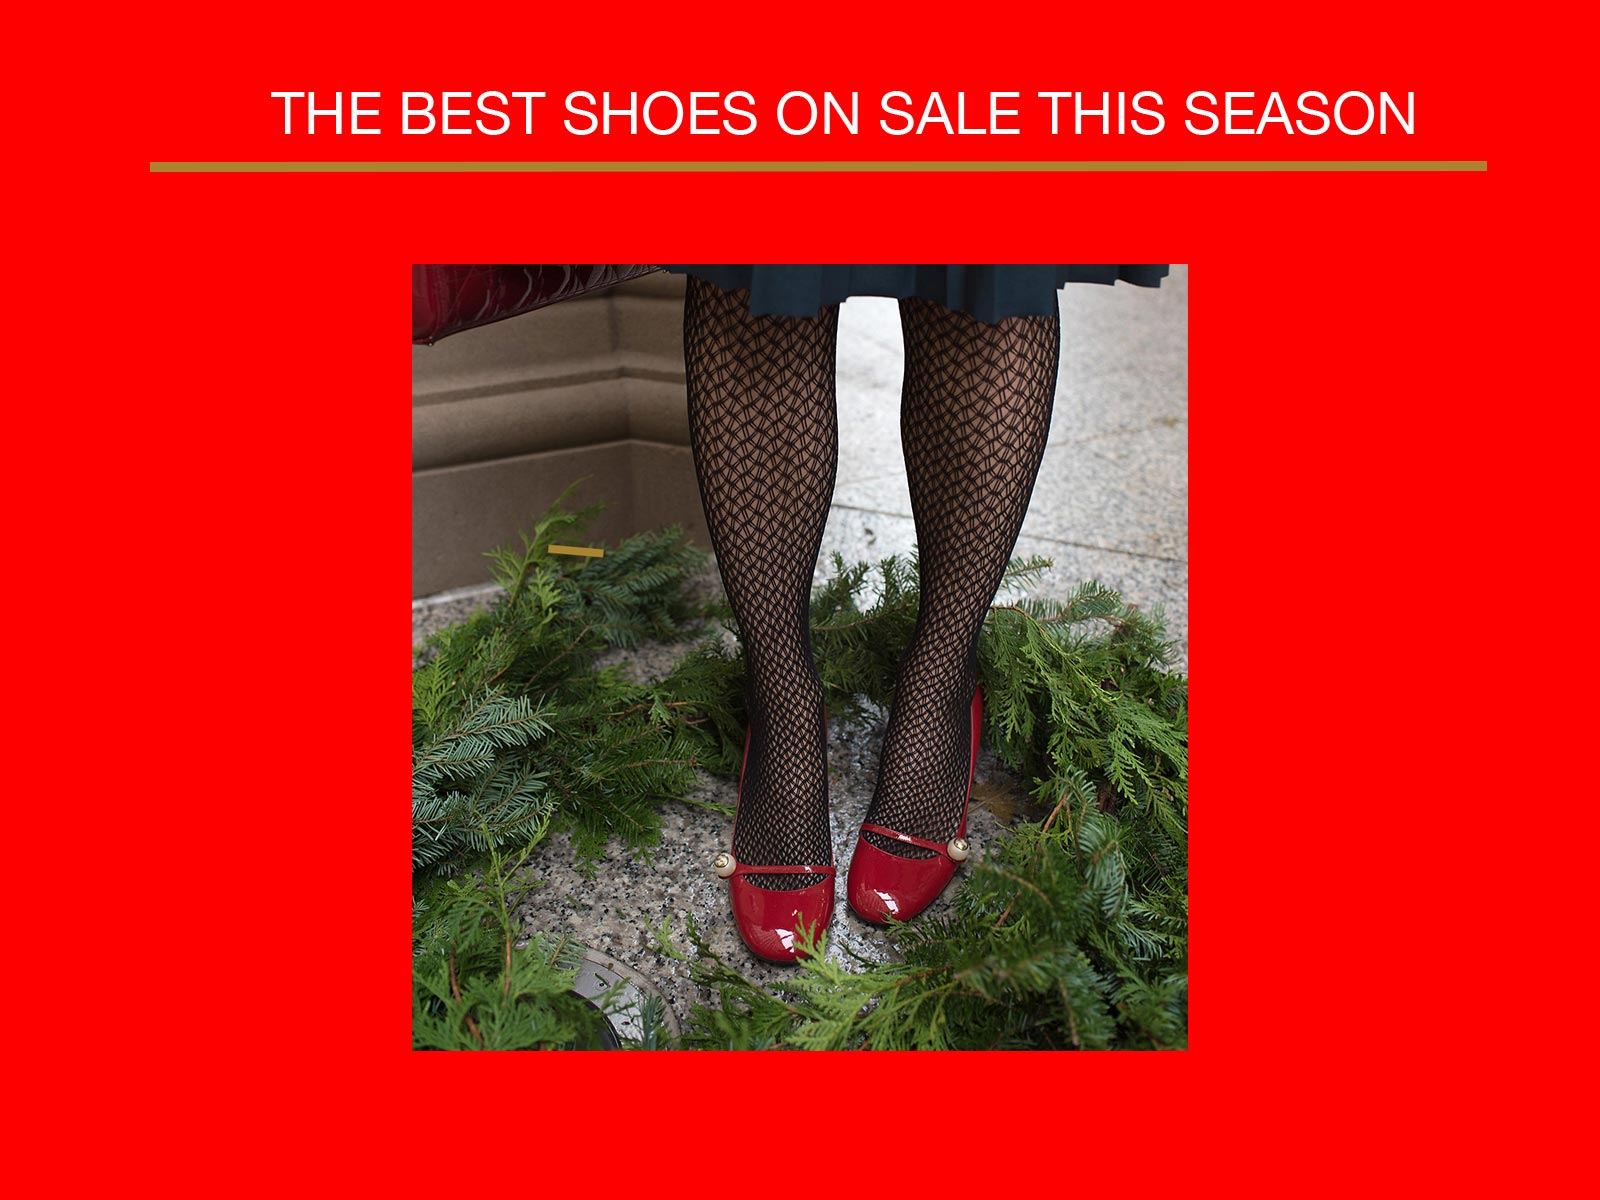 Anna Roufos Sosa of Noir Friday shares the best shoes on sale.